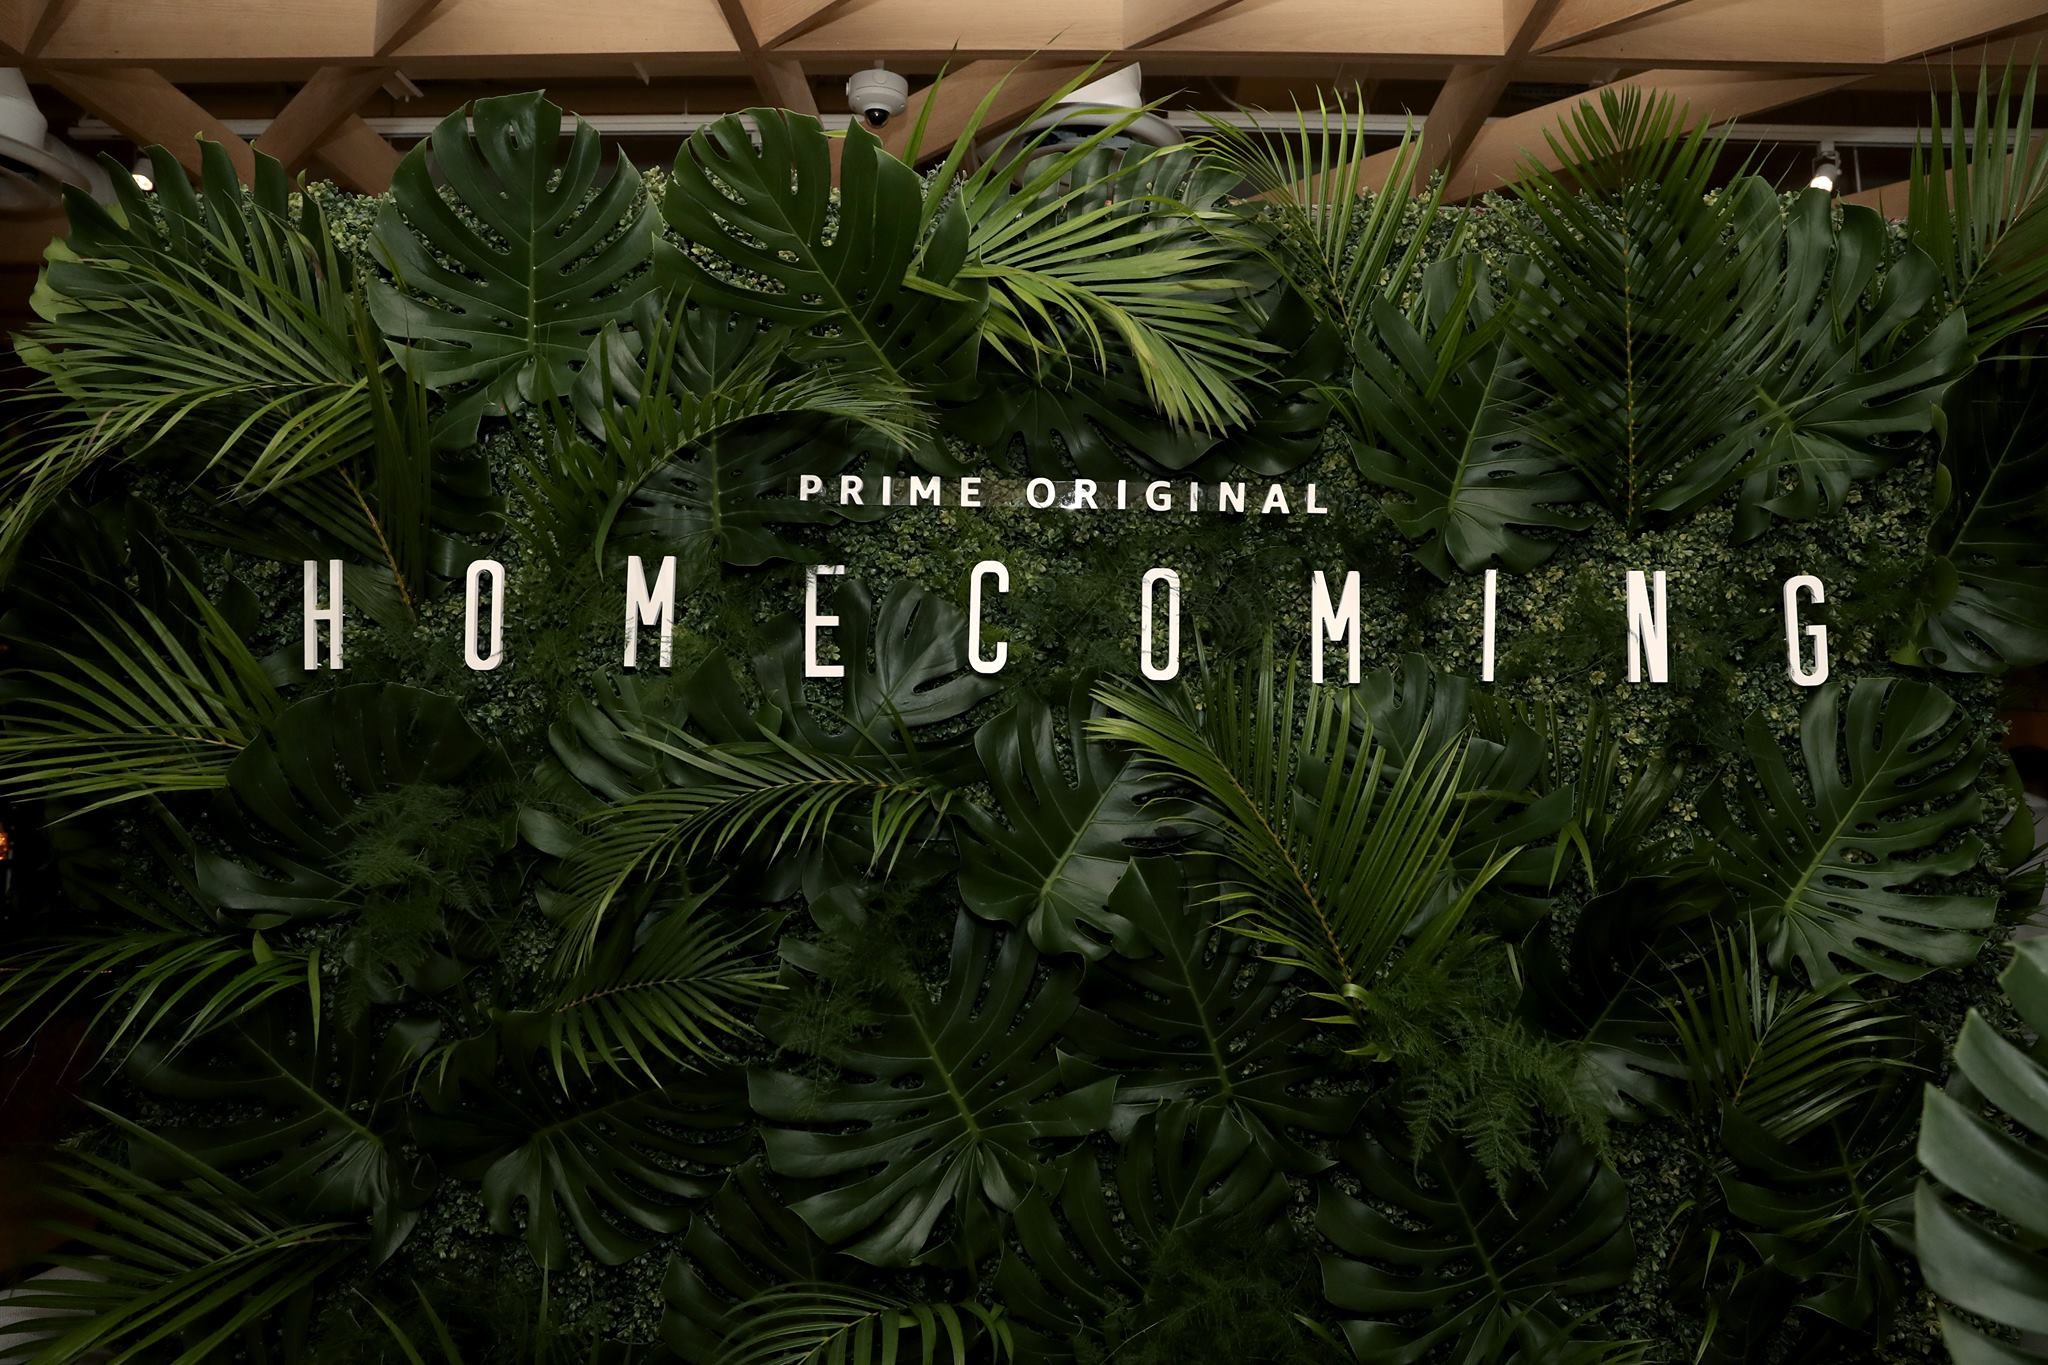 Homecoming - Amazon Prime Video